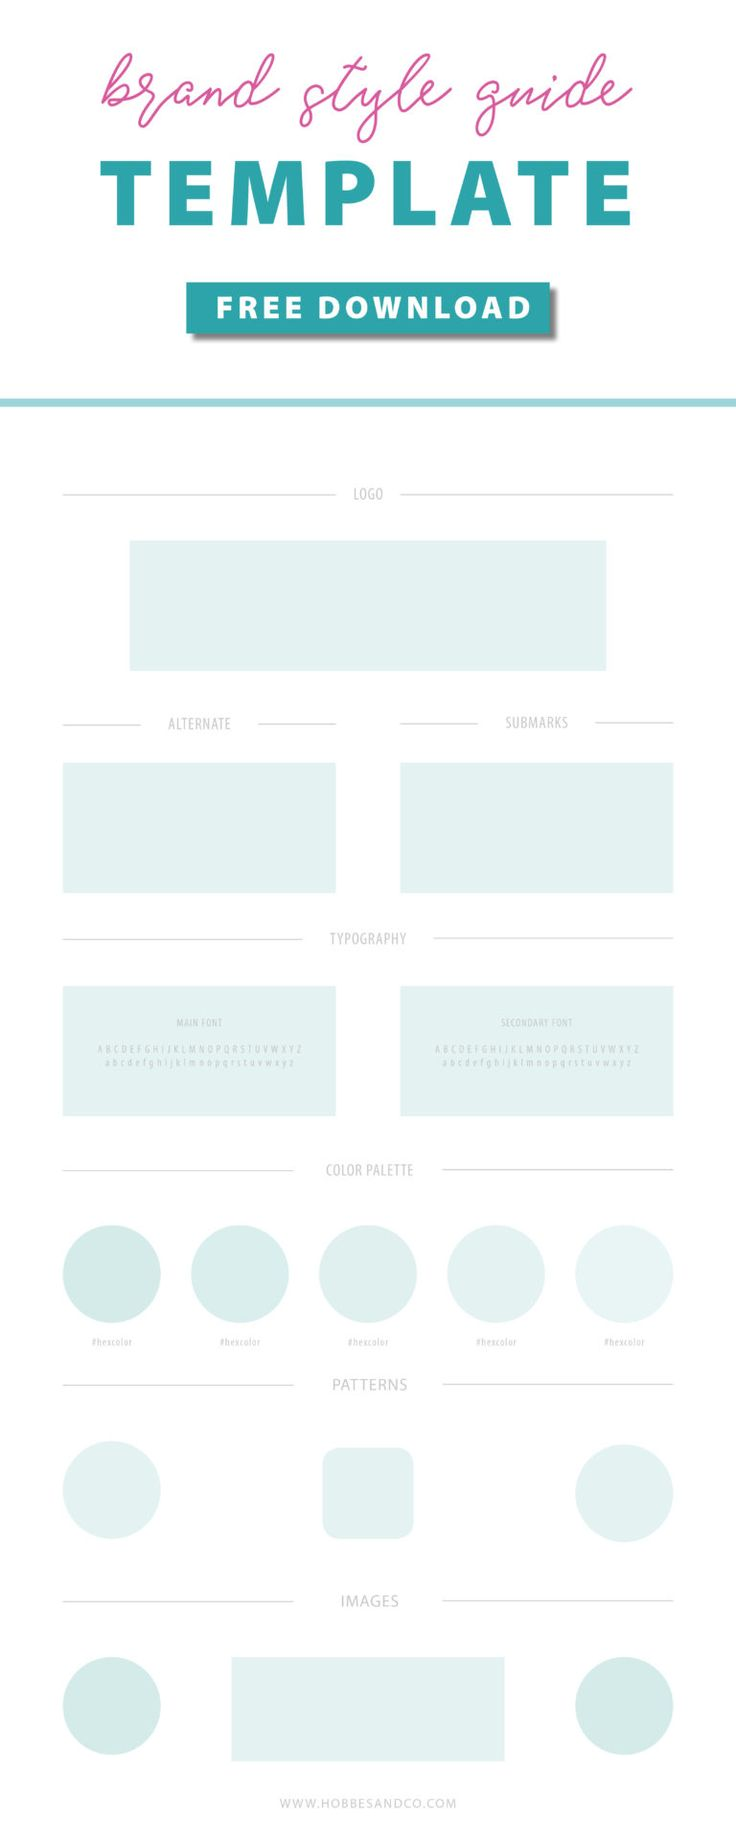 Free brand style guide template editable in Canva, Illustrator, InDesign or Photoshop!